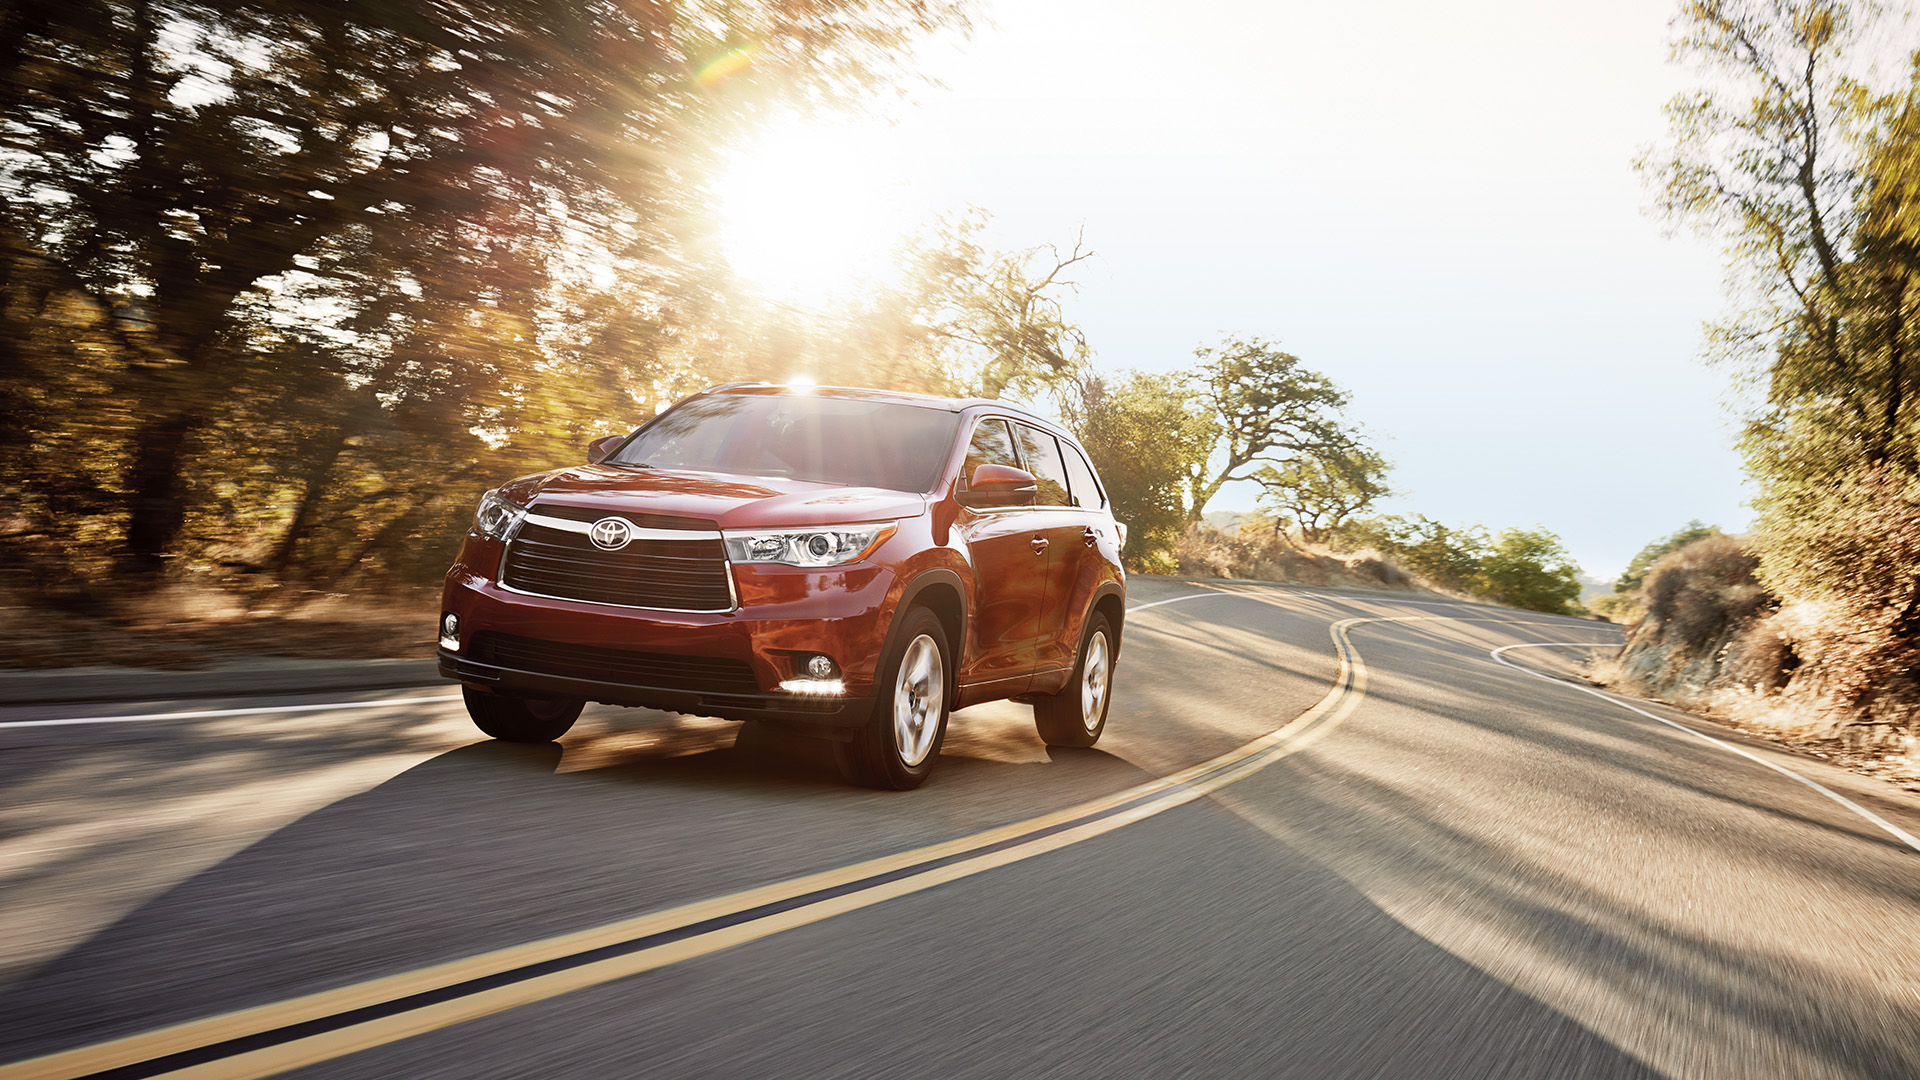 East coast road trip in Toyota Highlander - LivingMiVidaLoca.com